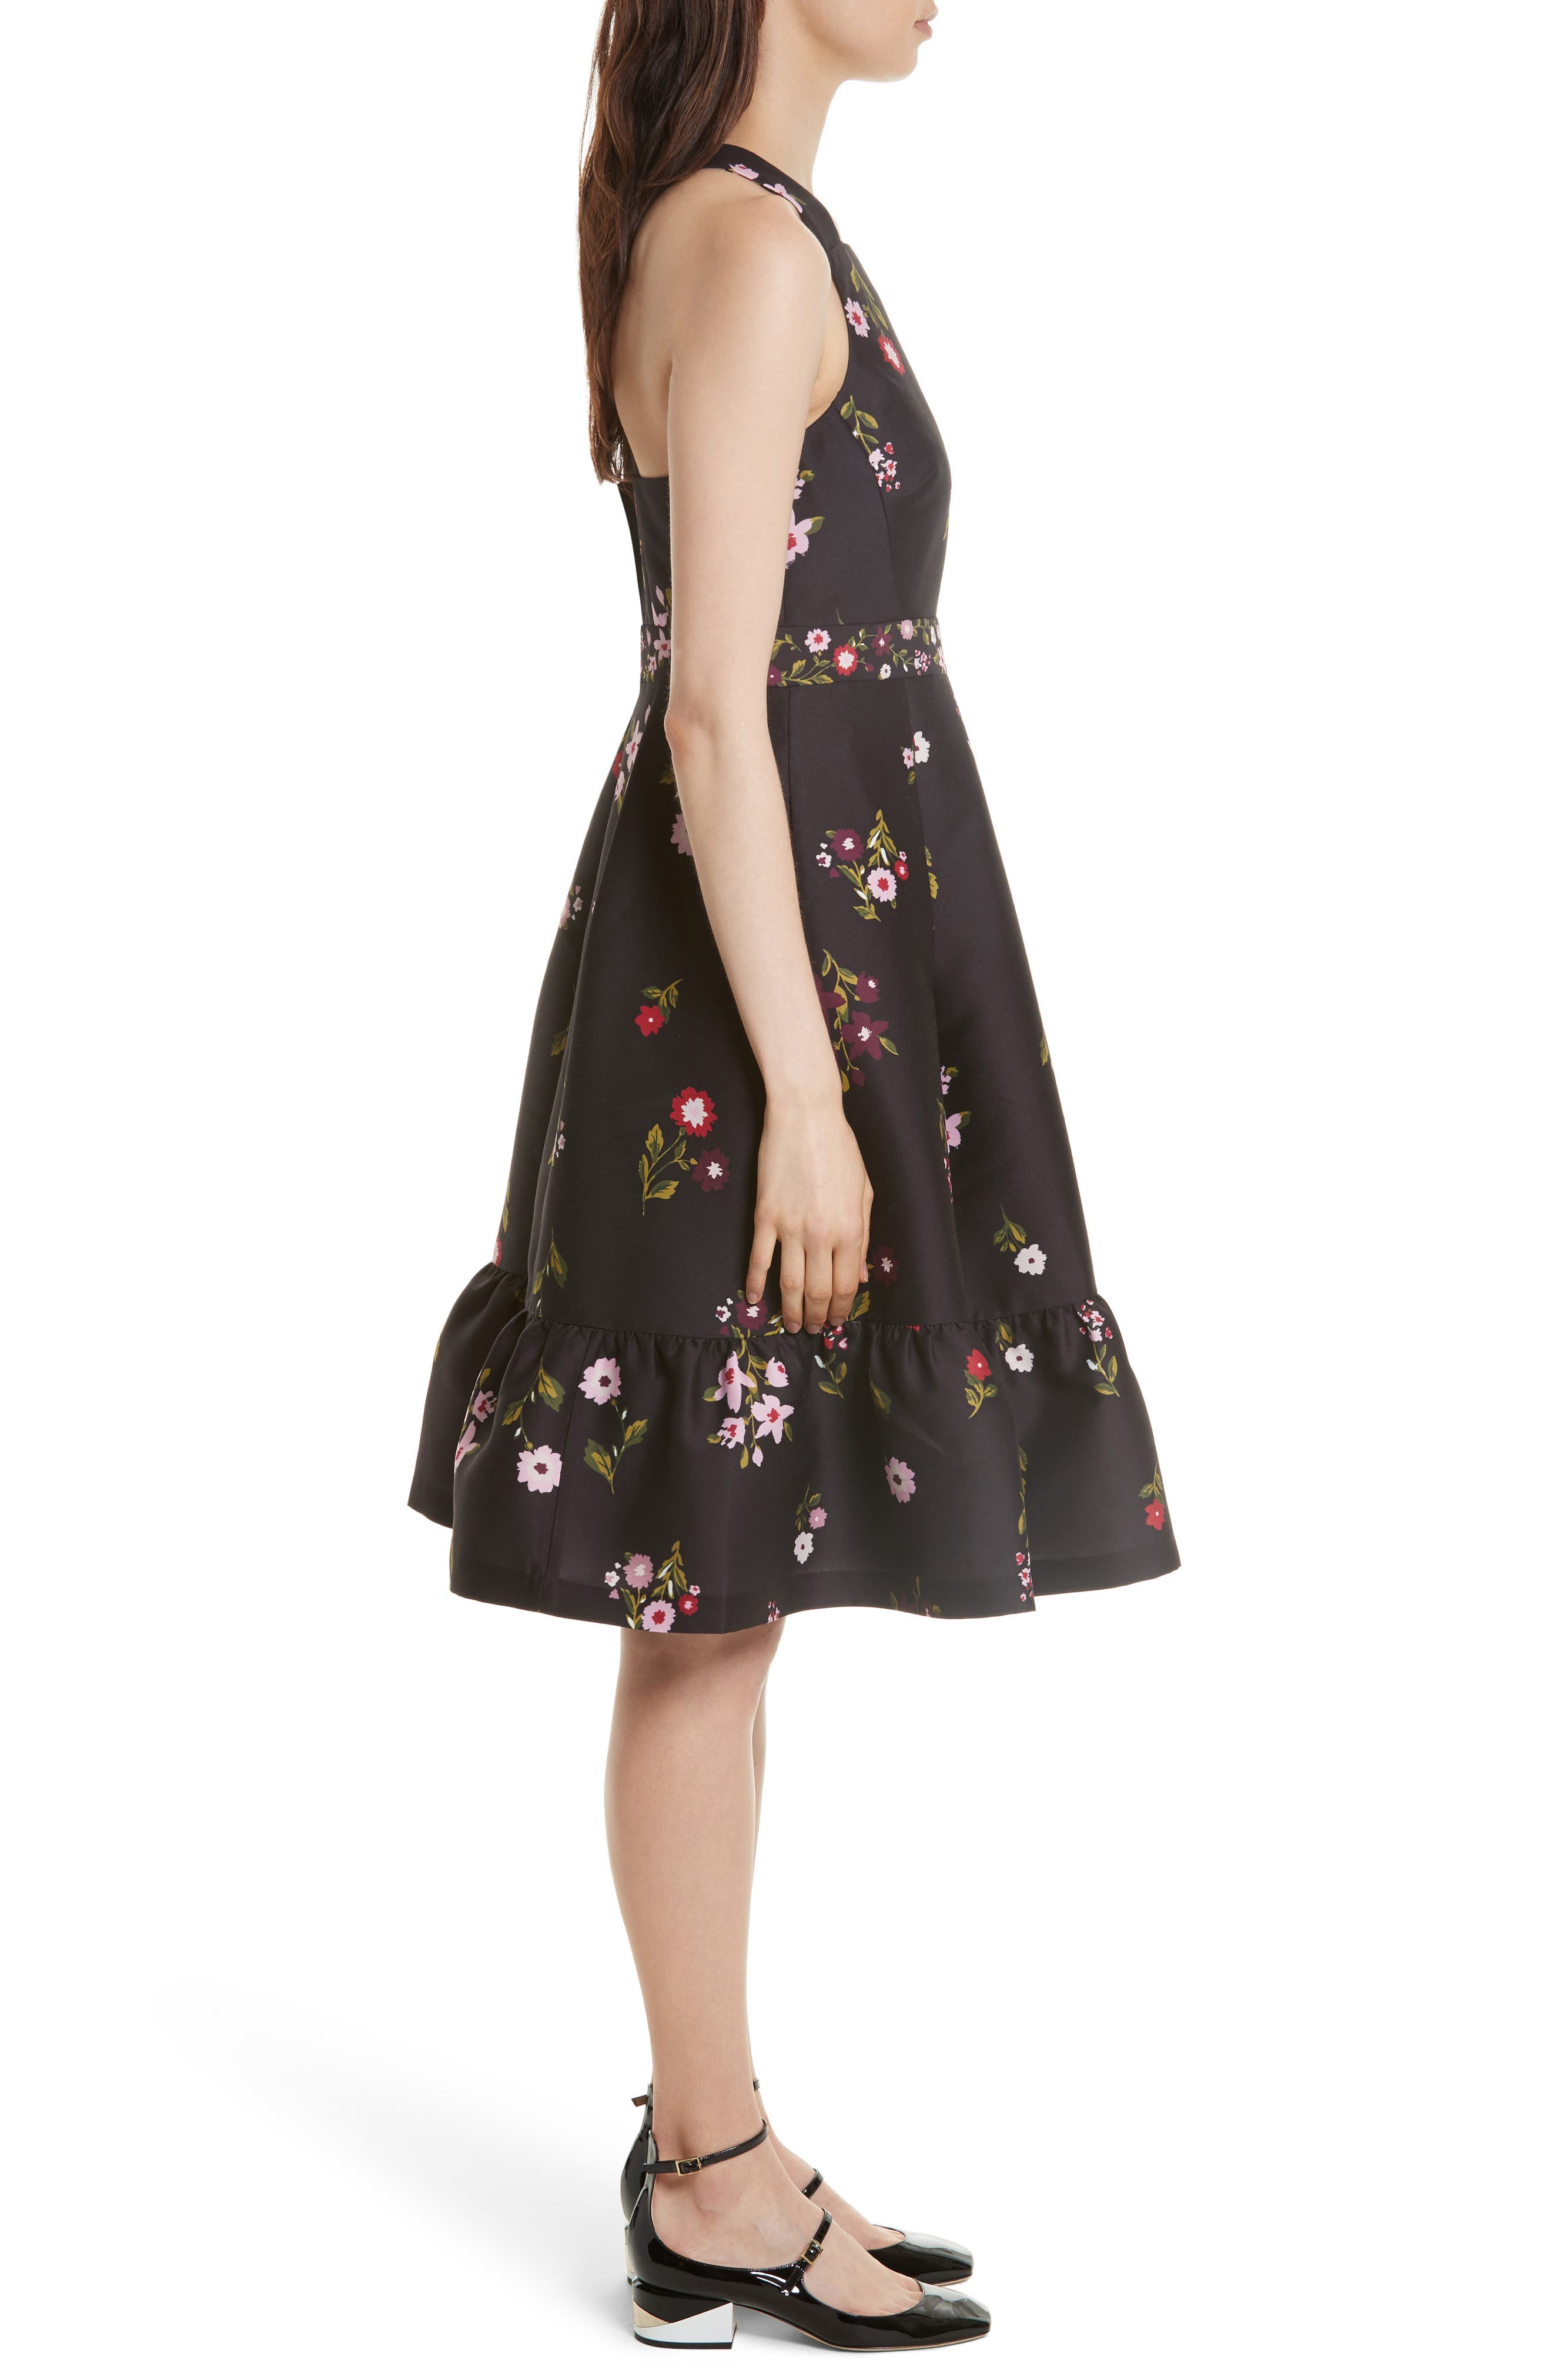 in bloom fit & flare dress,                             Alternate thumbnail 3, color,                             006